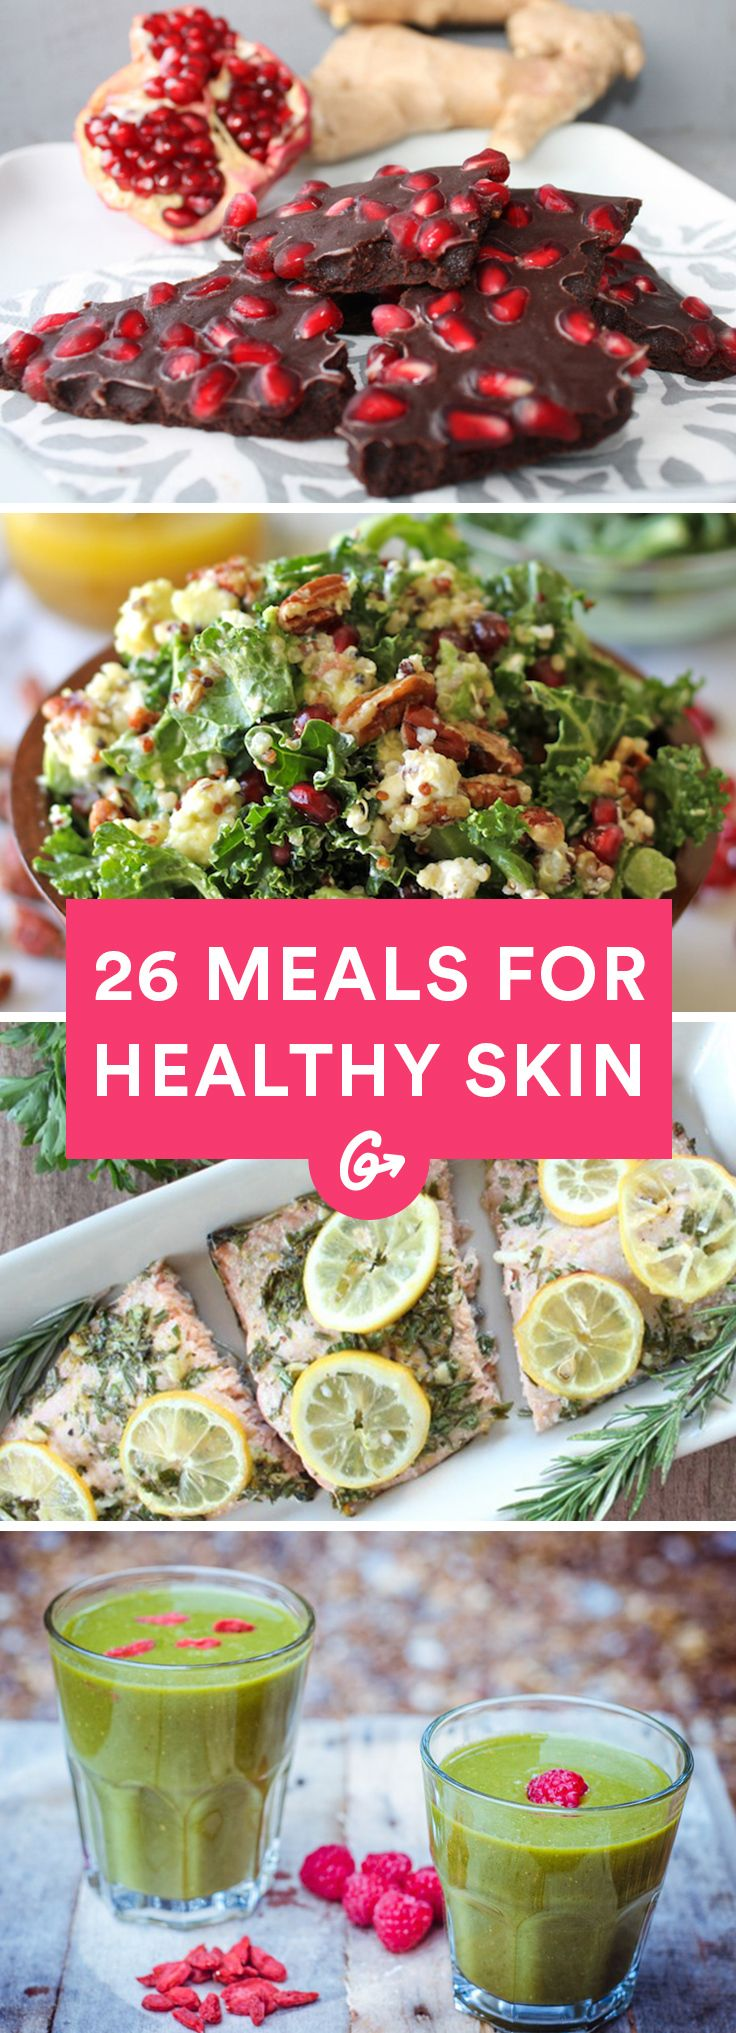 Achieving blemish-free, glowing skin may seem like a daunting task, but the solution may be no... #health #skincare #wellness http://greatist.com/health/meals-for-healthy-skin